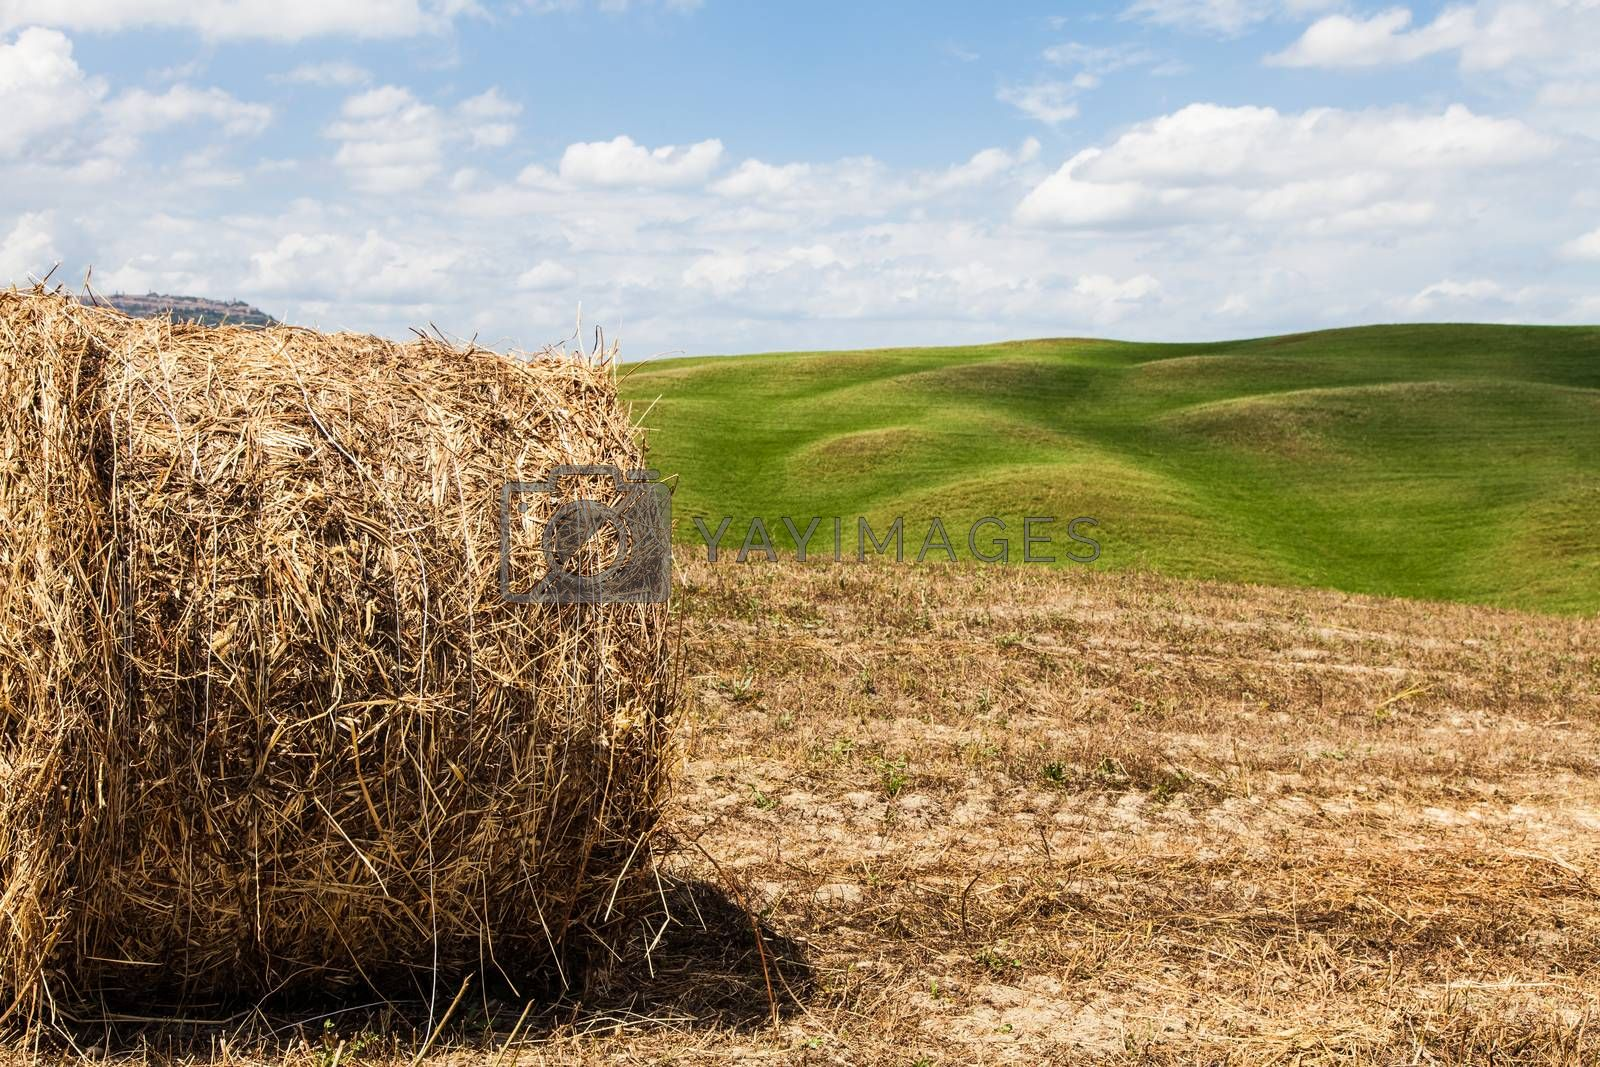 Royalty free image of Tuscany agriculture by Perseomedusa